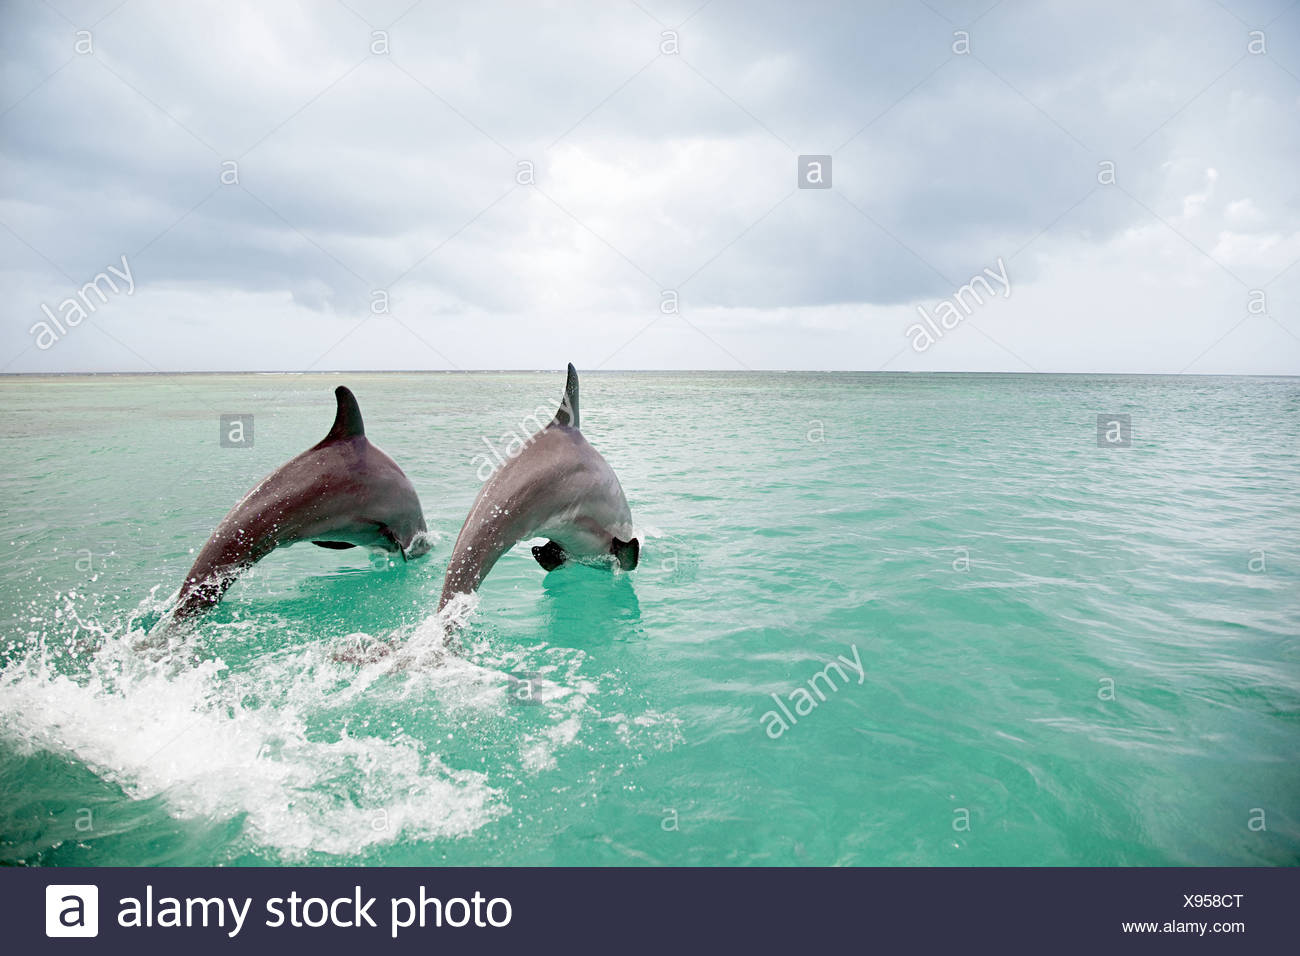 Bottlenose dolphins leaping into sea - Stock Image